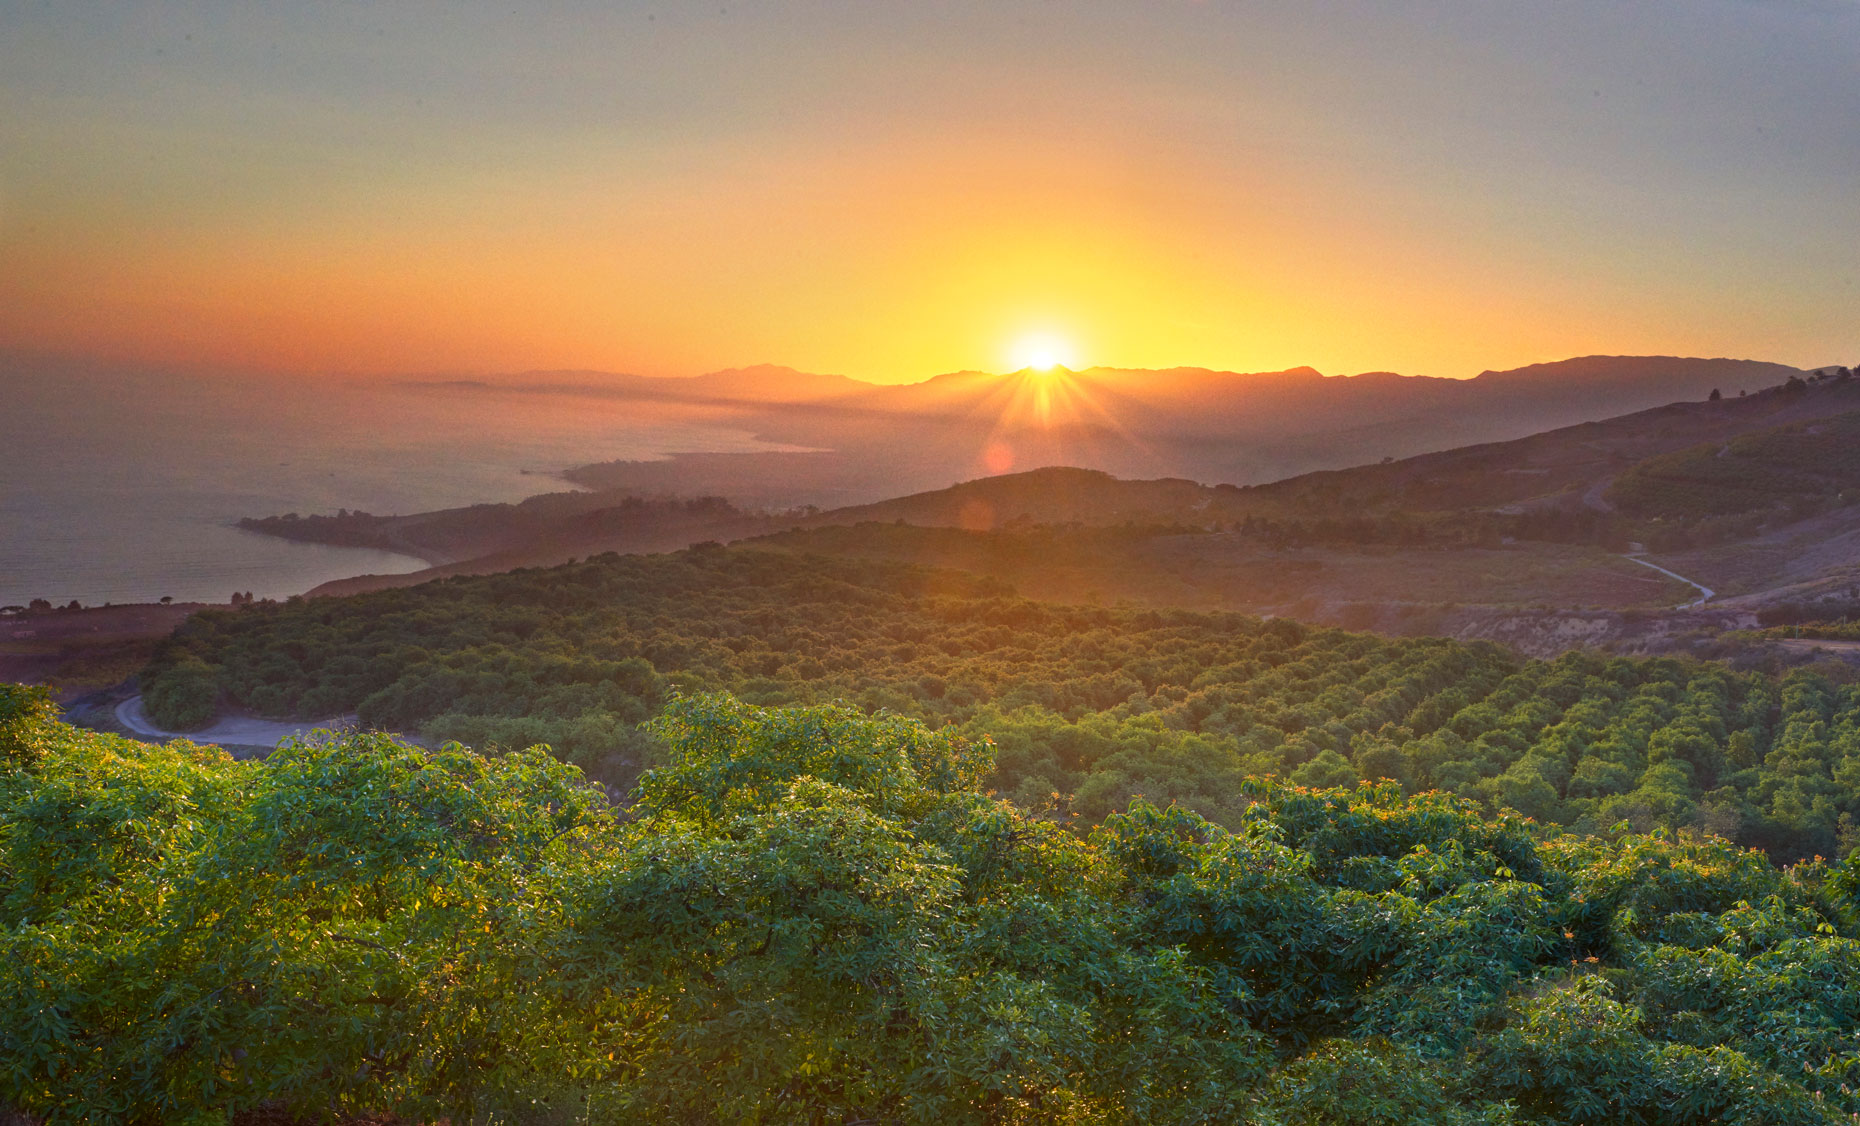 Avocado-orchard-at-sunset-on-the-central-California-coast-with pacific-coast-ocean-in-background.-by-Los-Angeles-farm-photographer-Joe-Atlas.